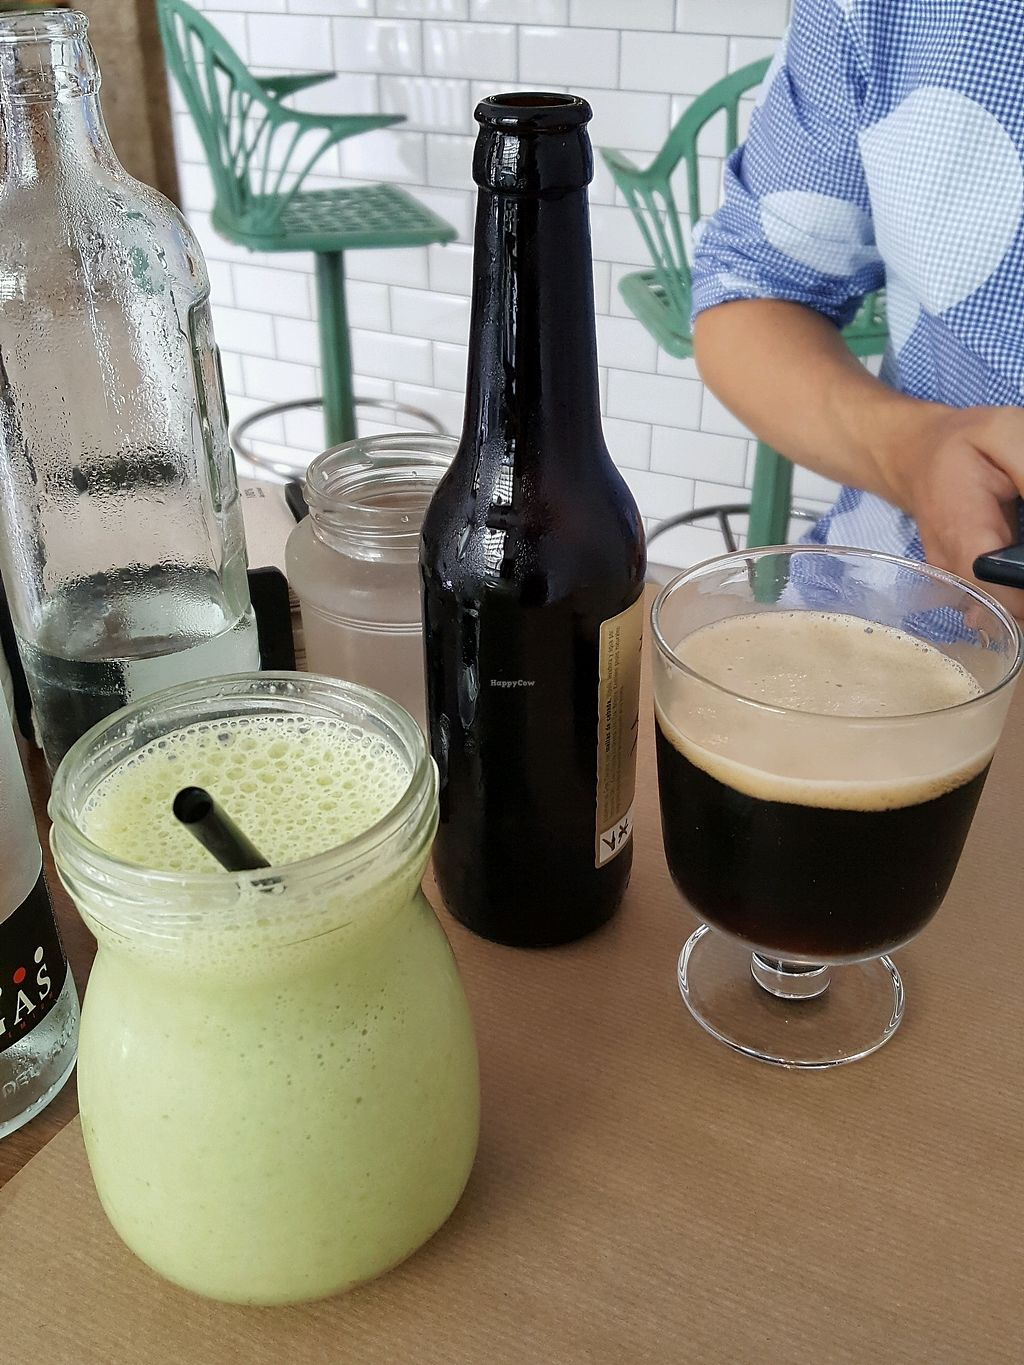 """Photo of Bioloco  by <a href=""""/members/profile/EllenNorman"""">EllenNorman</a> <br/>Craft beer and smoothie  <br/> October 1, 2017  - <a href='/contact/abuse/image/76580/310602'>Report</a>"""